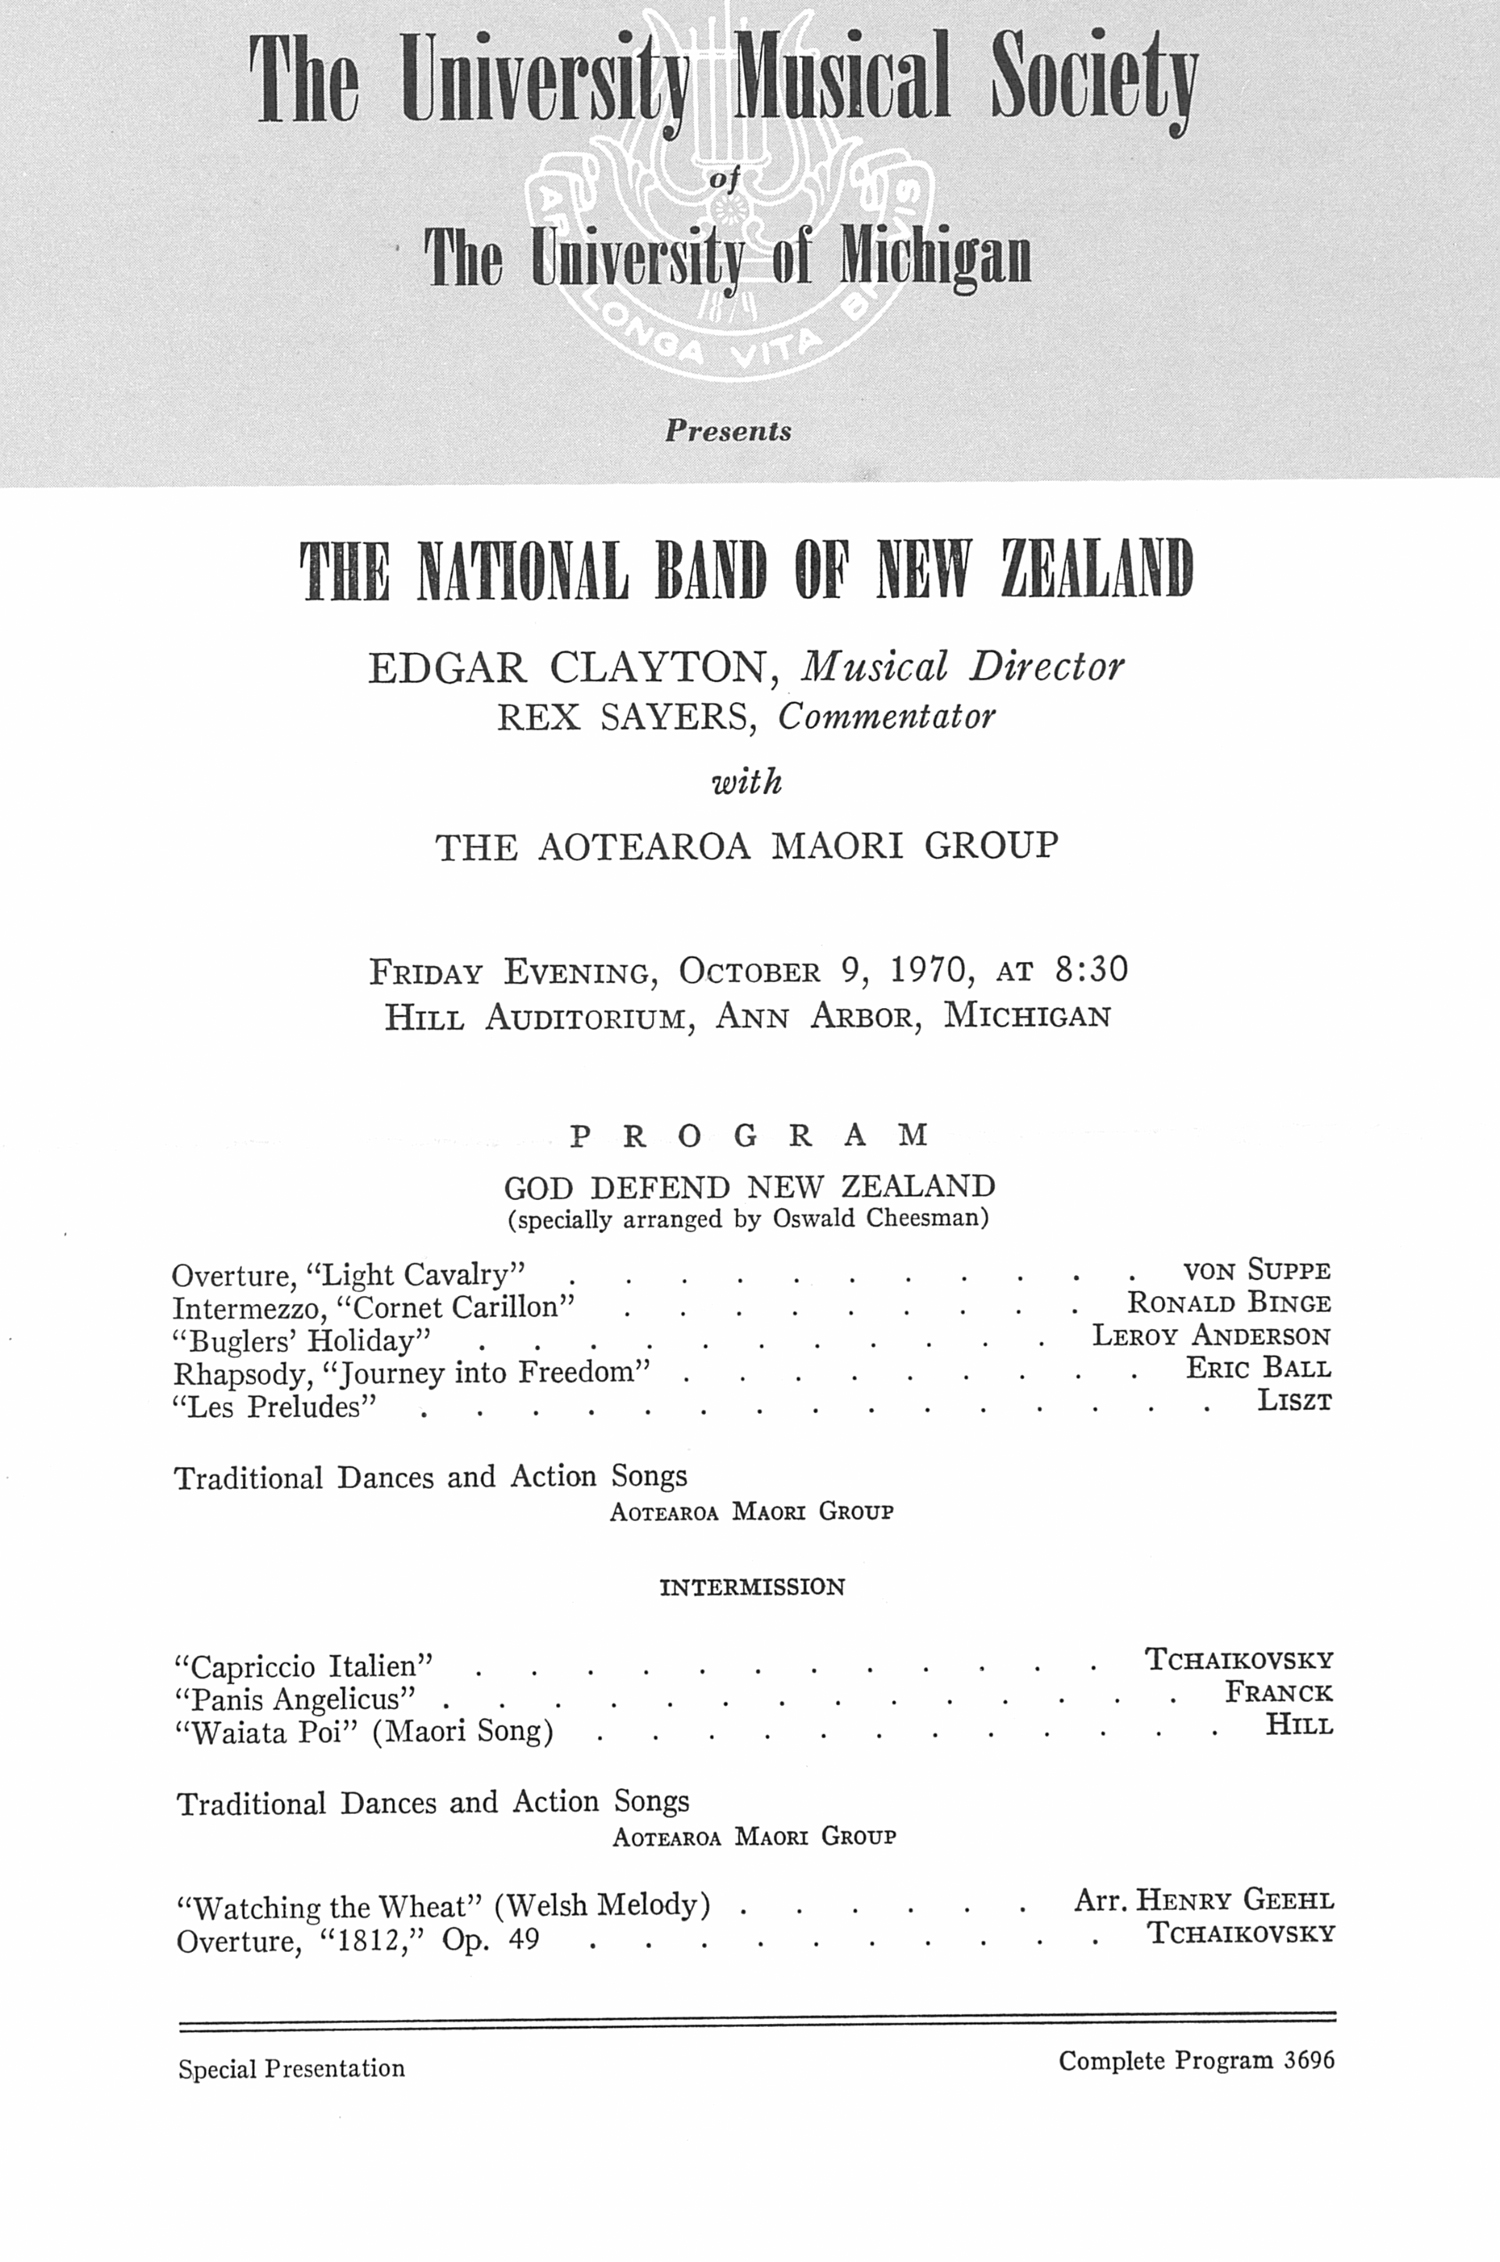 UMS Concert Program, October 9, 1970: The National Band Of New Zealand -- Edgar Clayton image